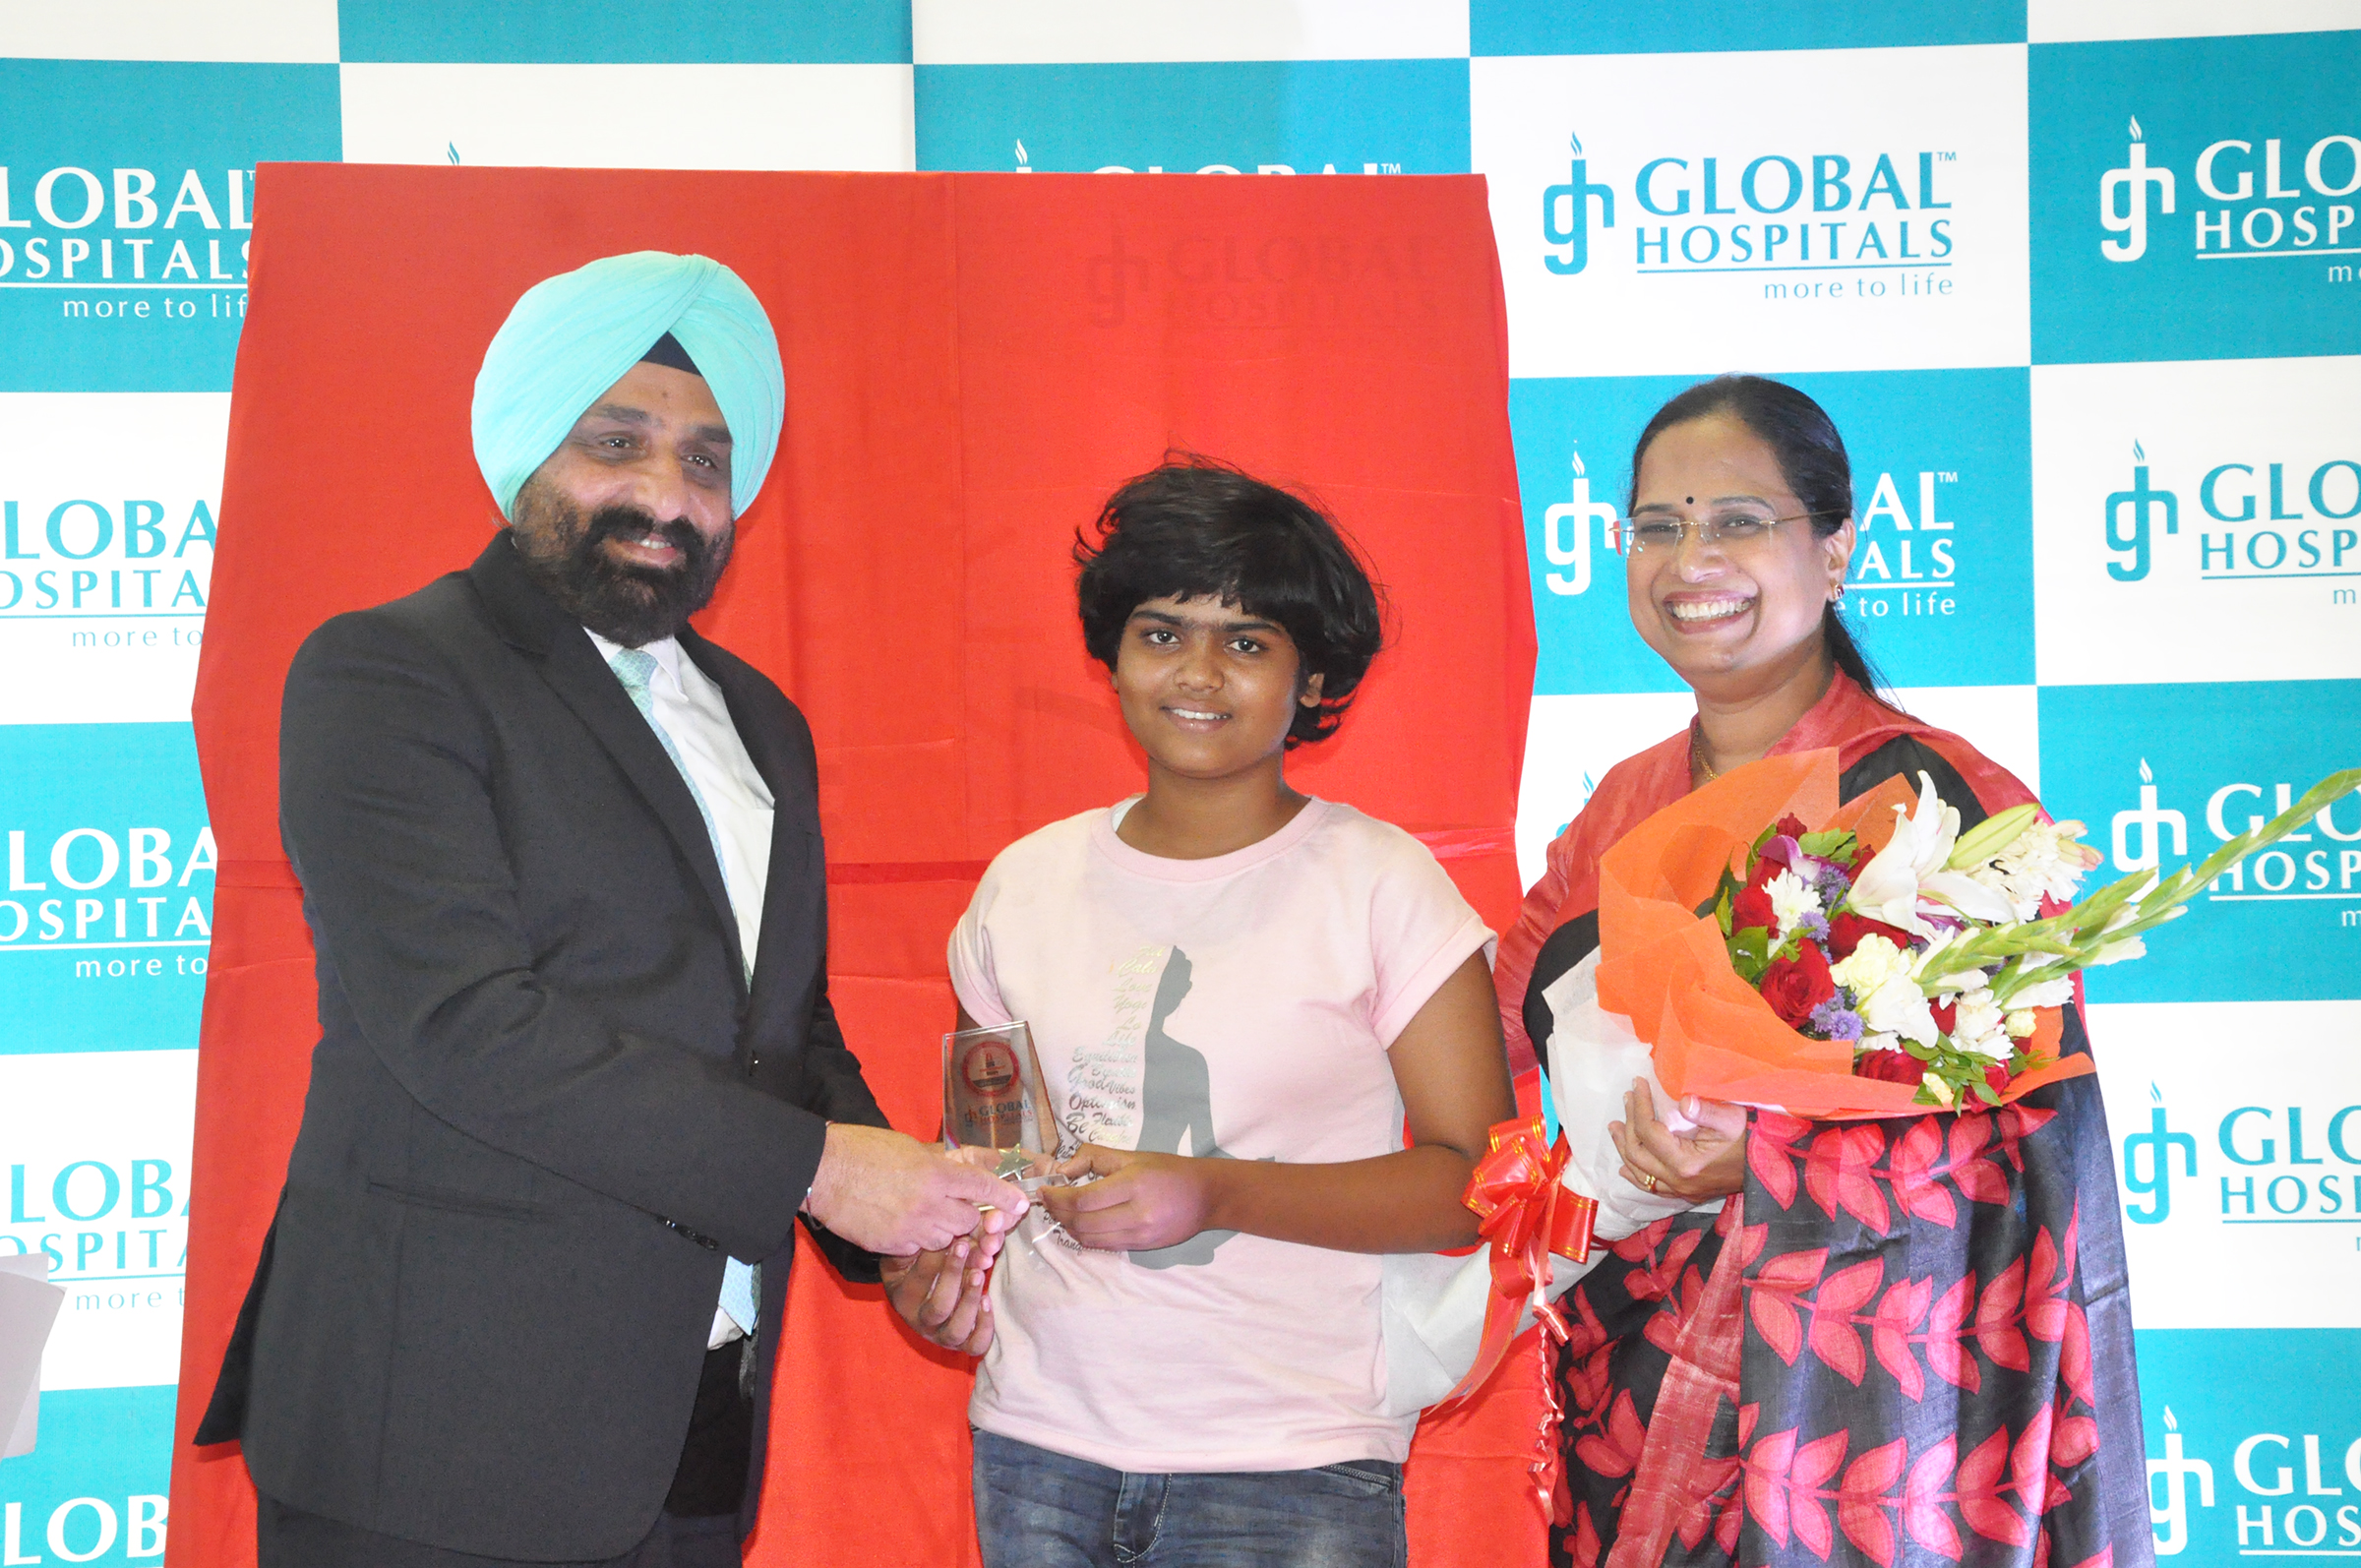 L-R-Mr.-Manpreet-Sohal-Regional-Chief-Executive-Officer-at-Global-Hospitals-Zen-Sadavarte.jpg September 5, 2018